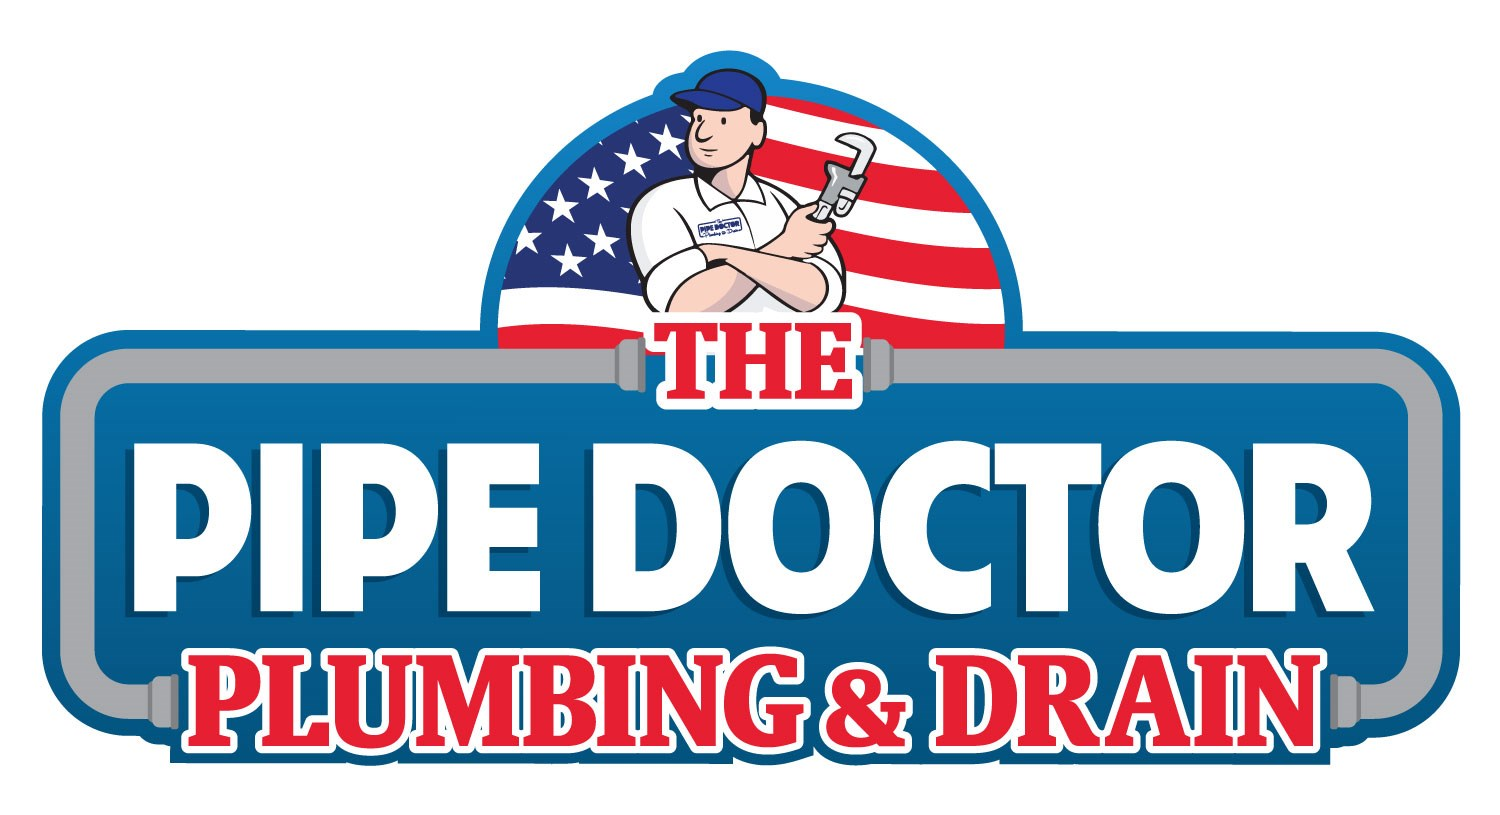 The Pipe Doctor Plumbing Service logo